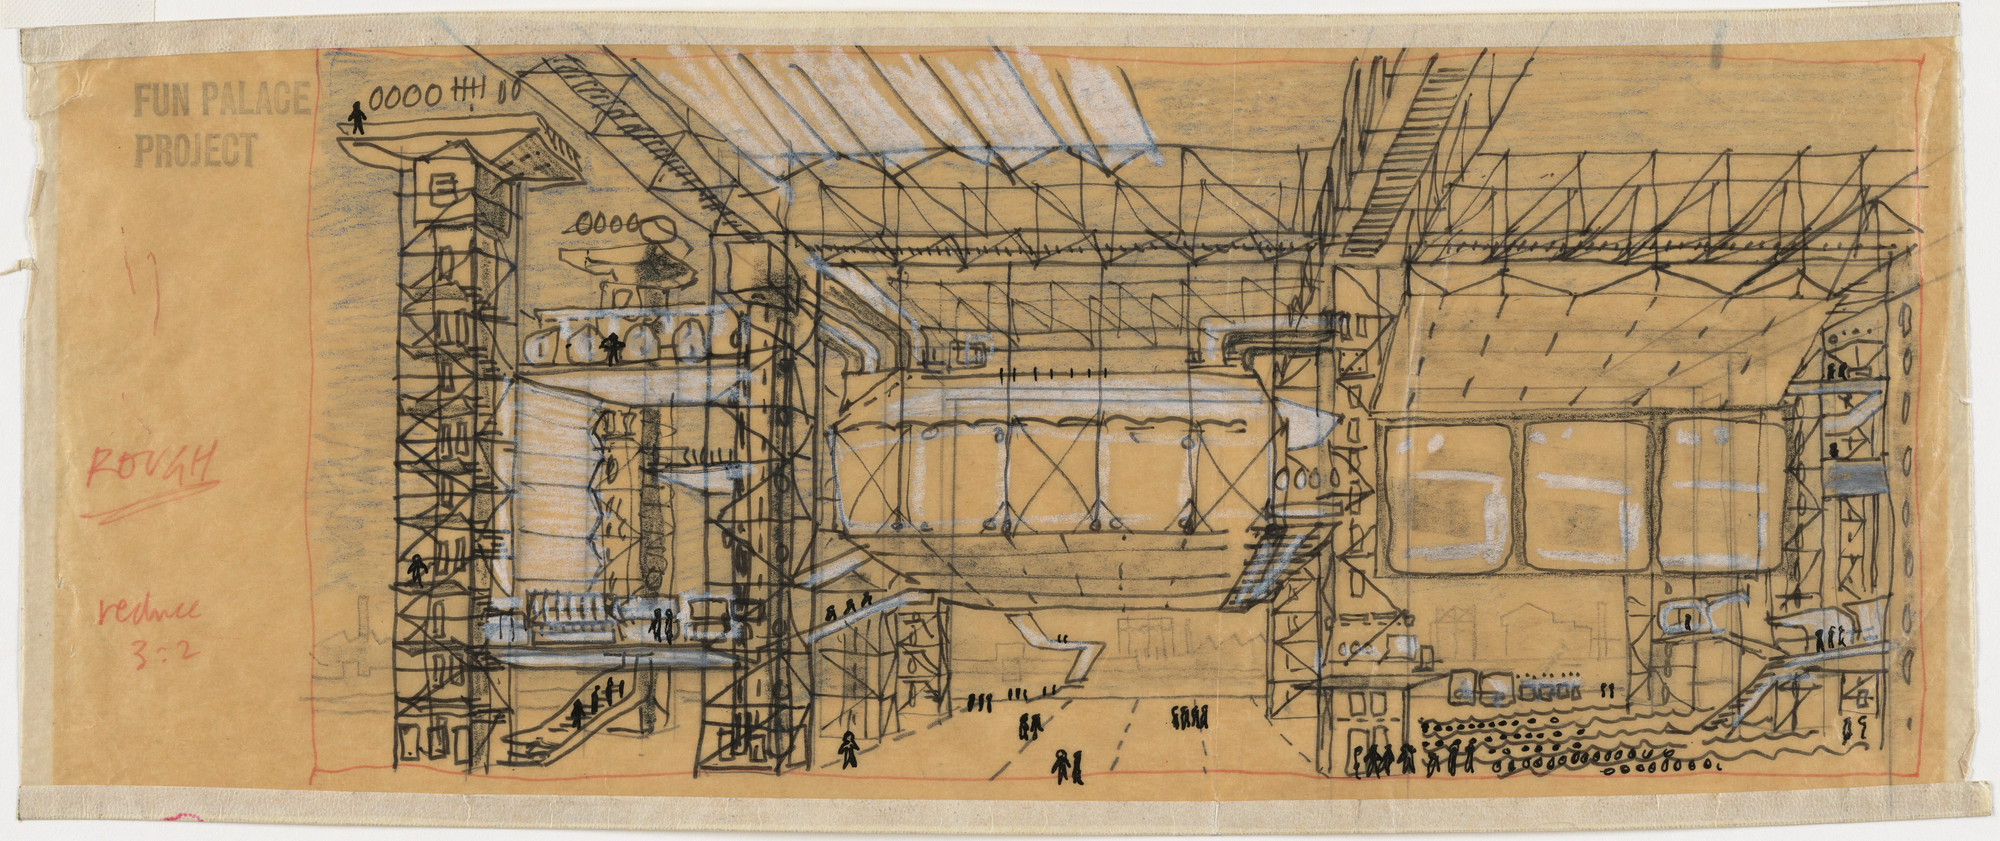 Cedric Price. Fun Palace for Joan Littlewood Project, Stratford East, London, England (Perspective). 1959–1961